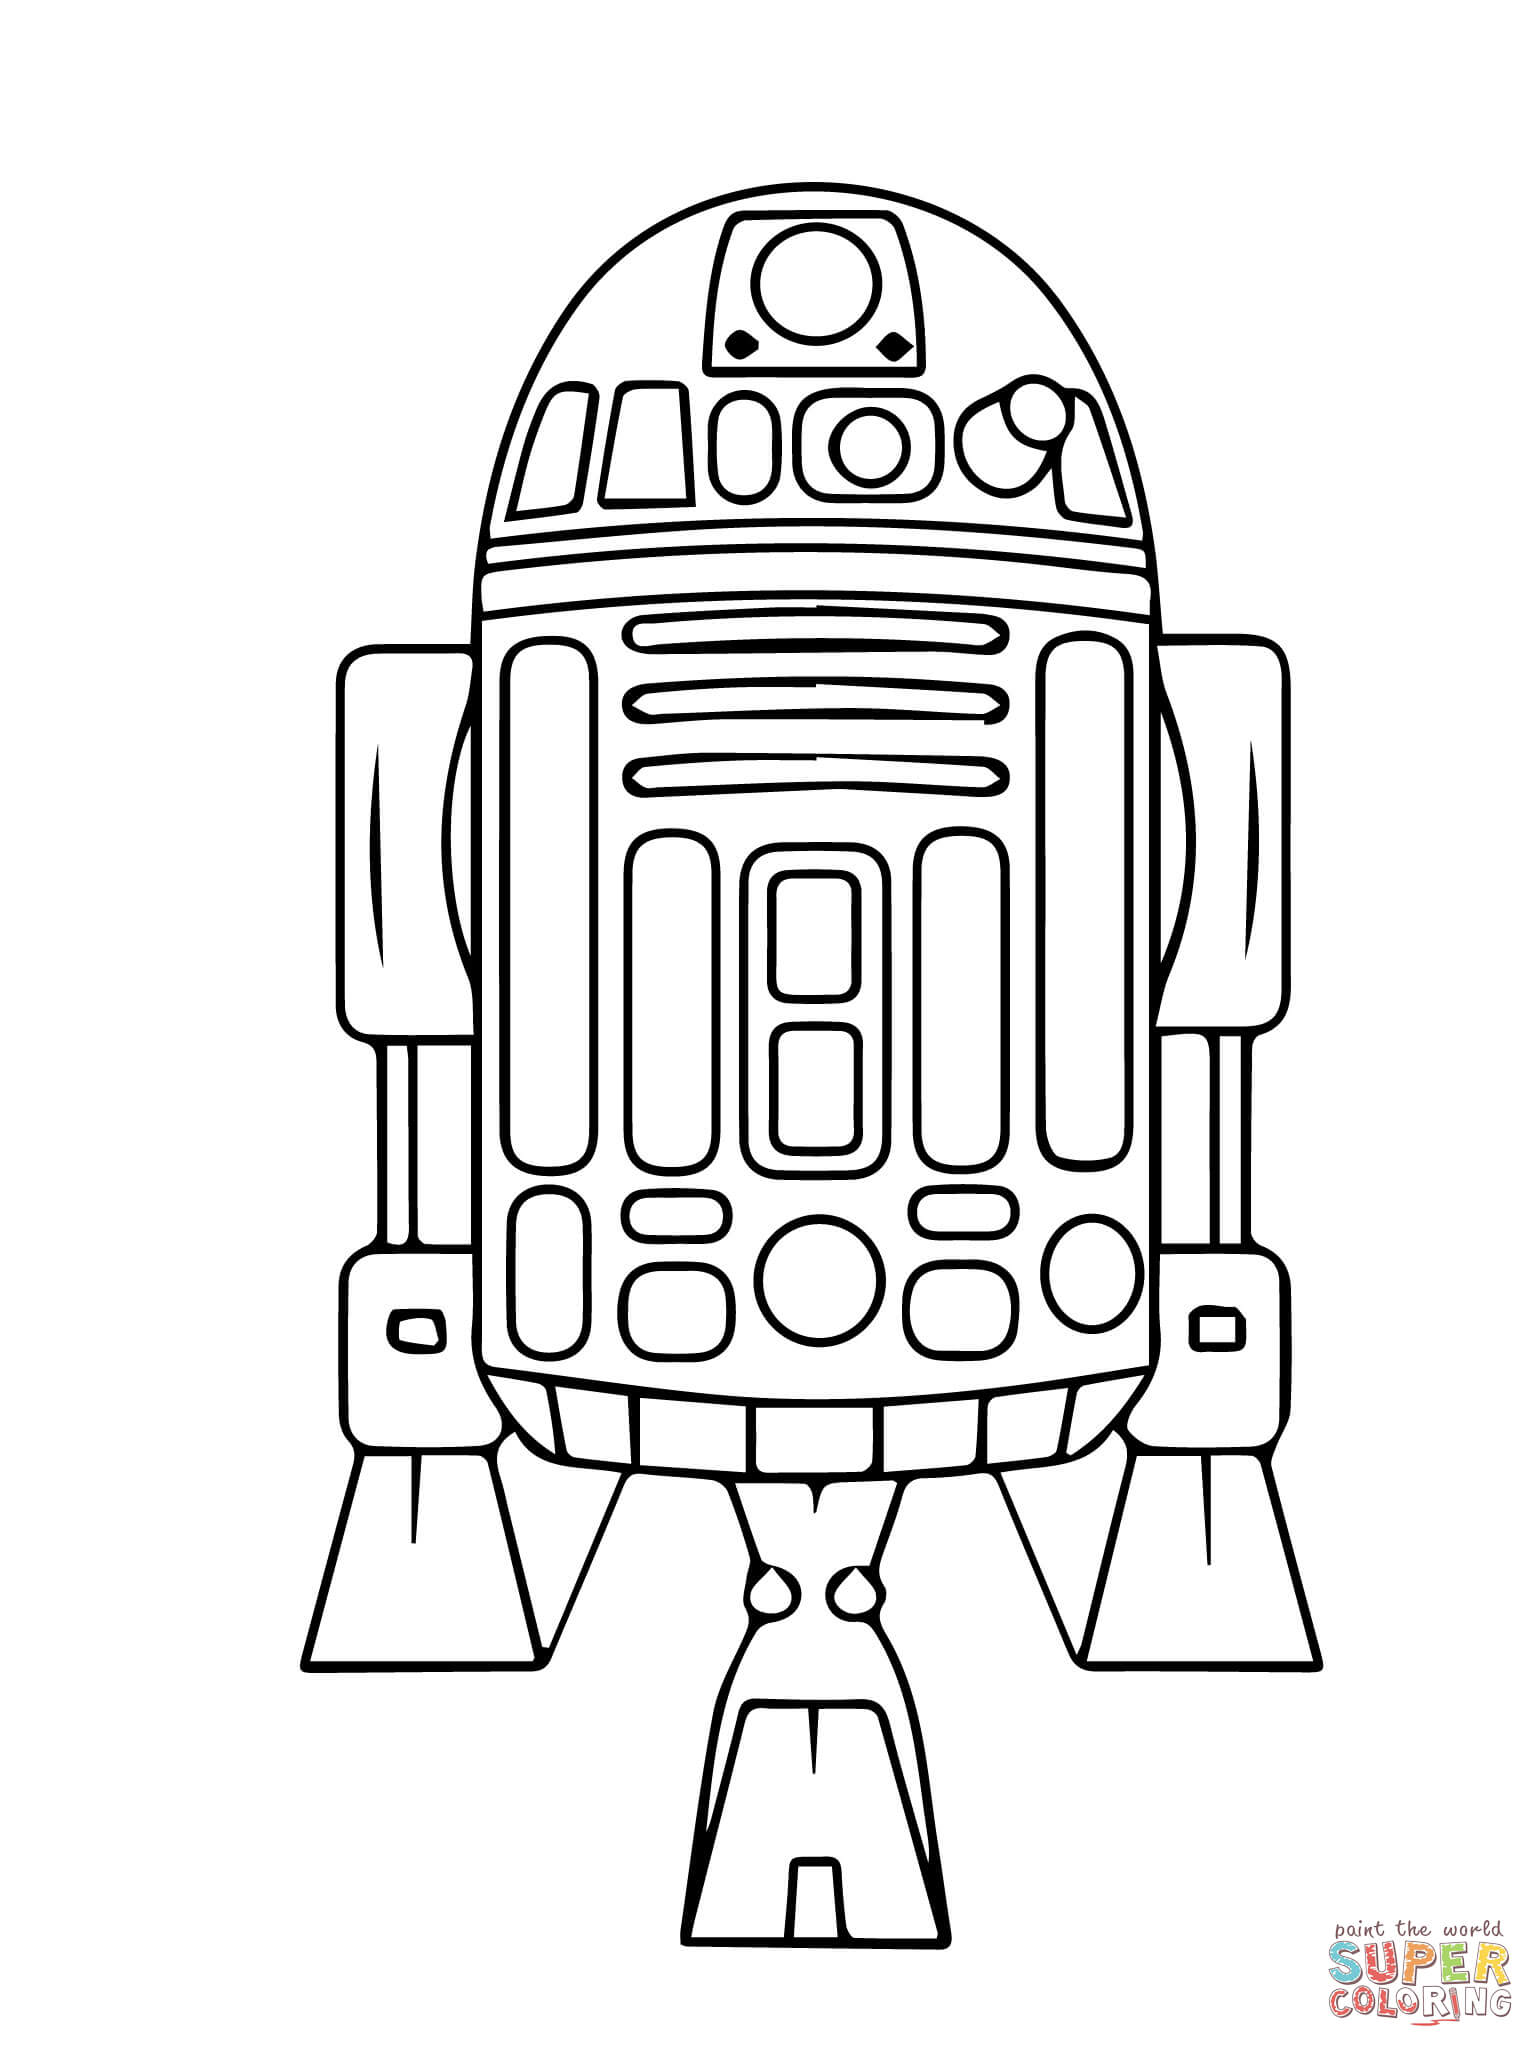 R Wars Coloring Pages Printable - Coloring Home